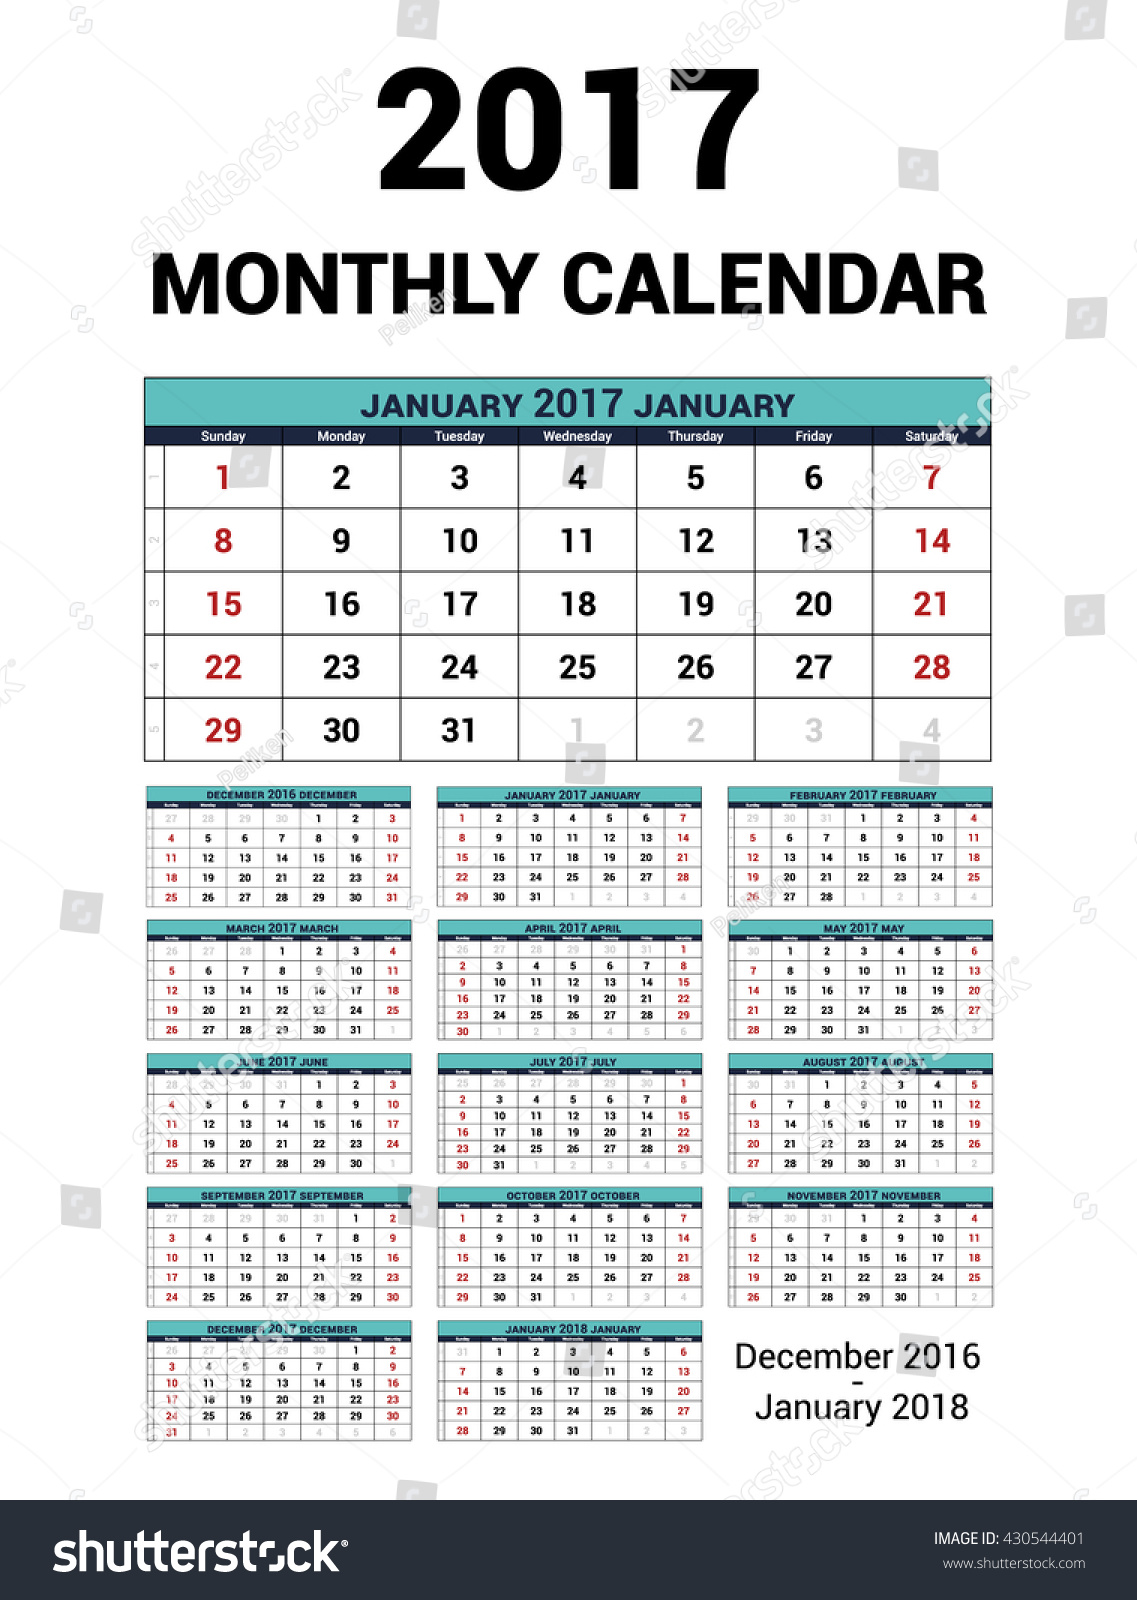 Weekly Calendar Vector : Calendar monthly year vector stationery stock